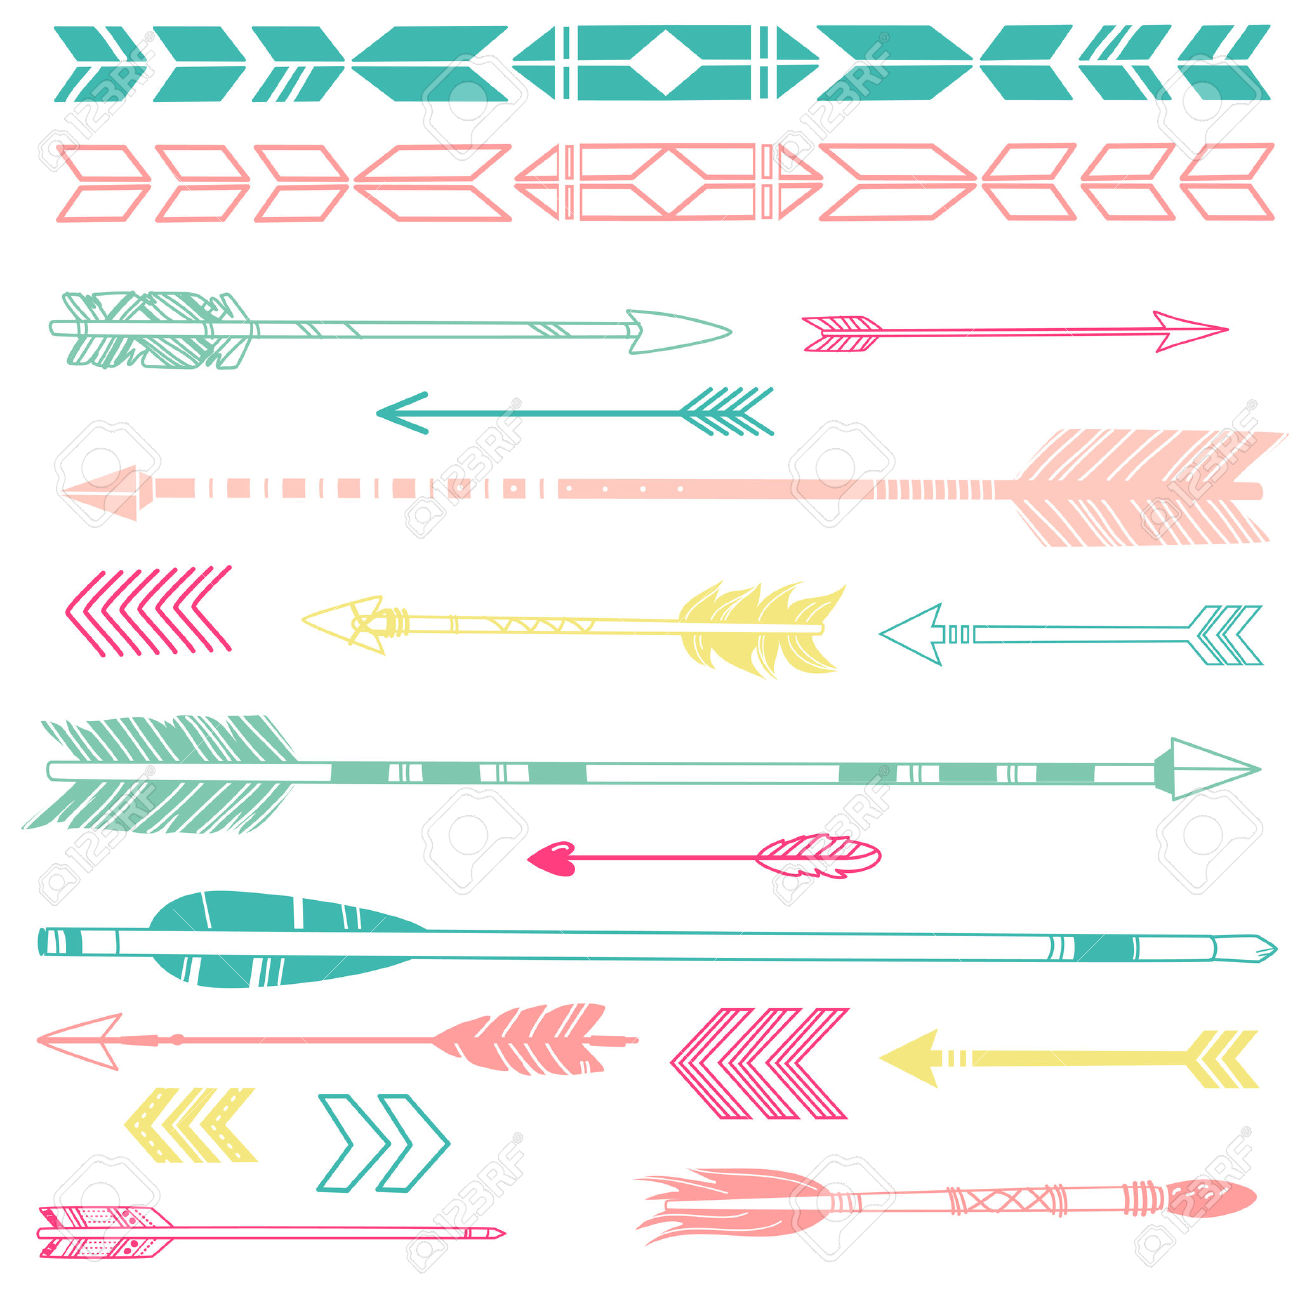 Arrows clipart cute. Indian arrow